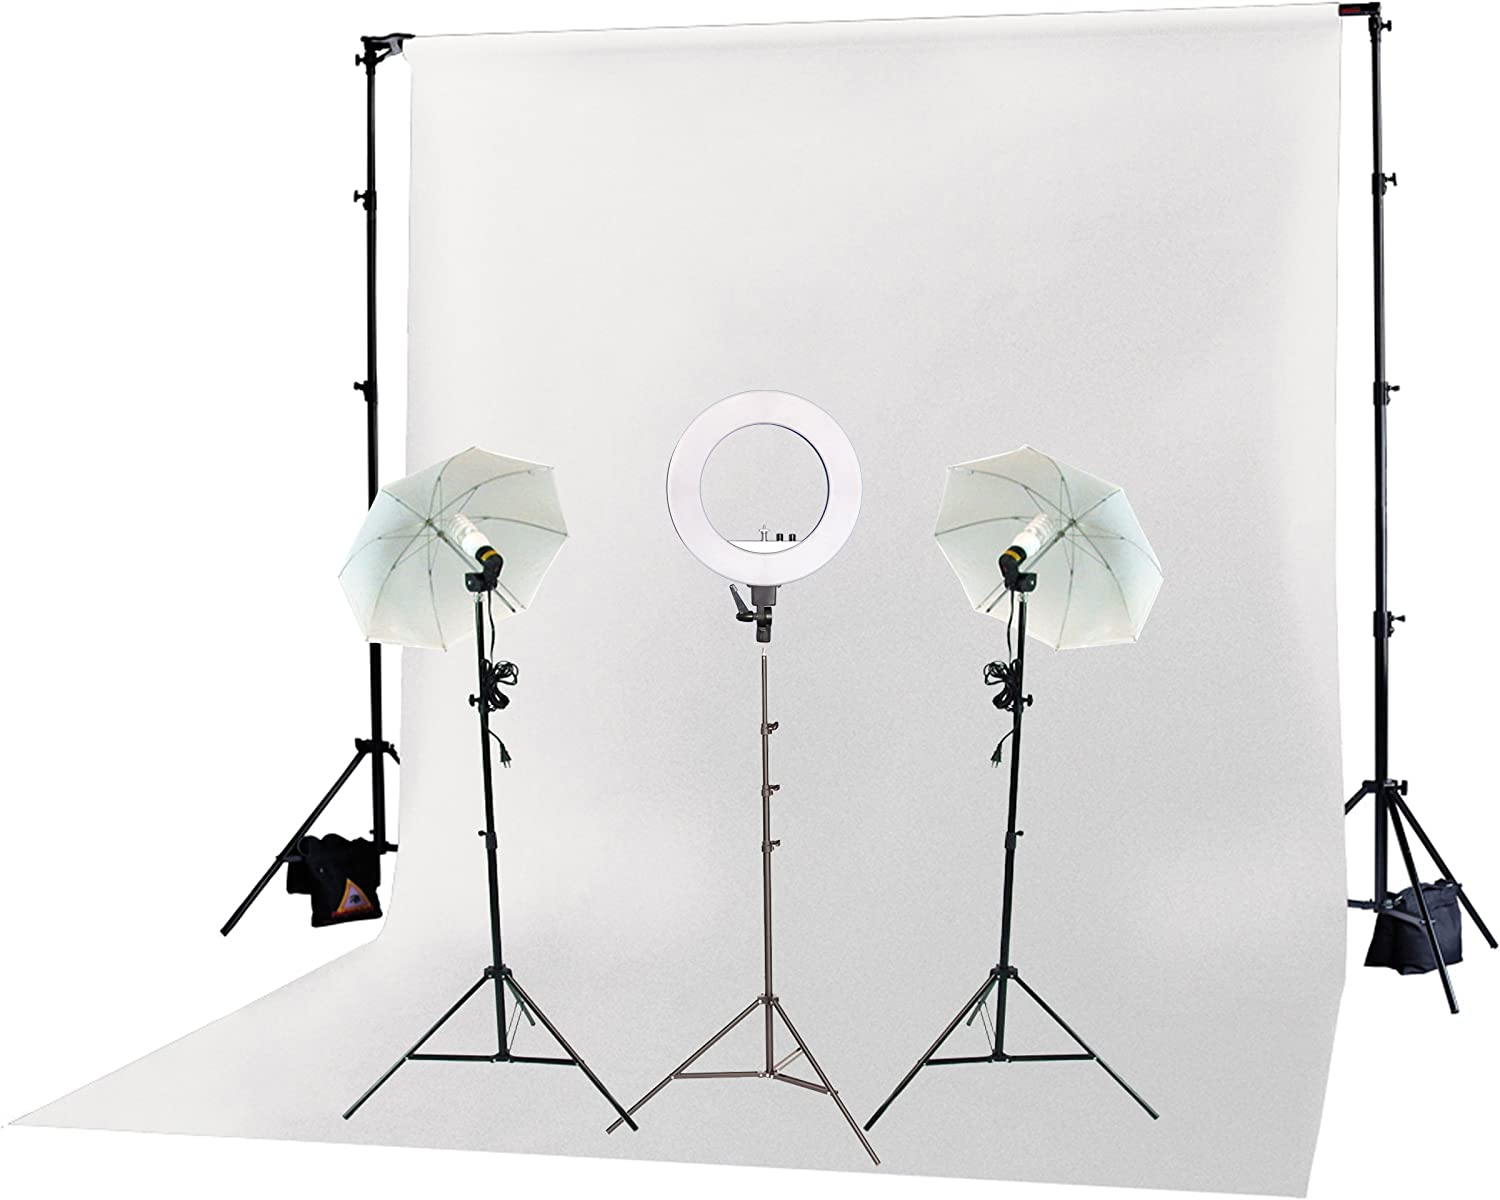 White Backdrop /& Stand Fodoto 3-Point Photo Video Continuous Umbrella Lighting Kit